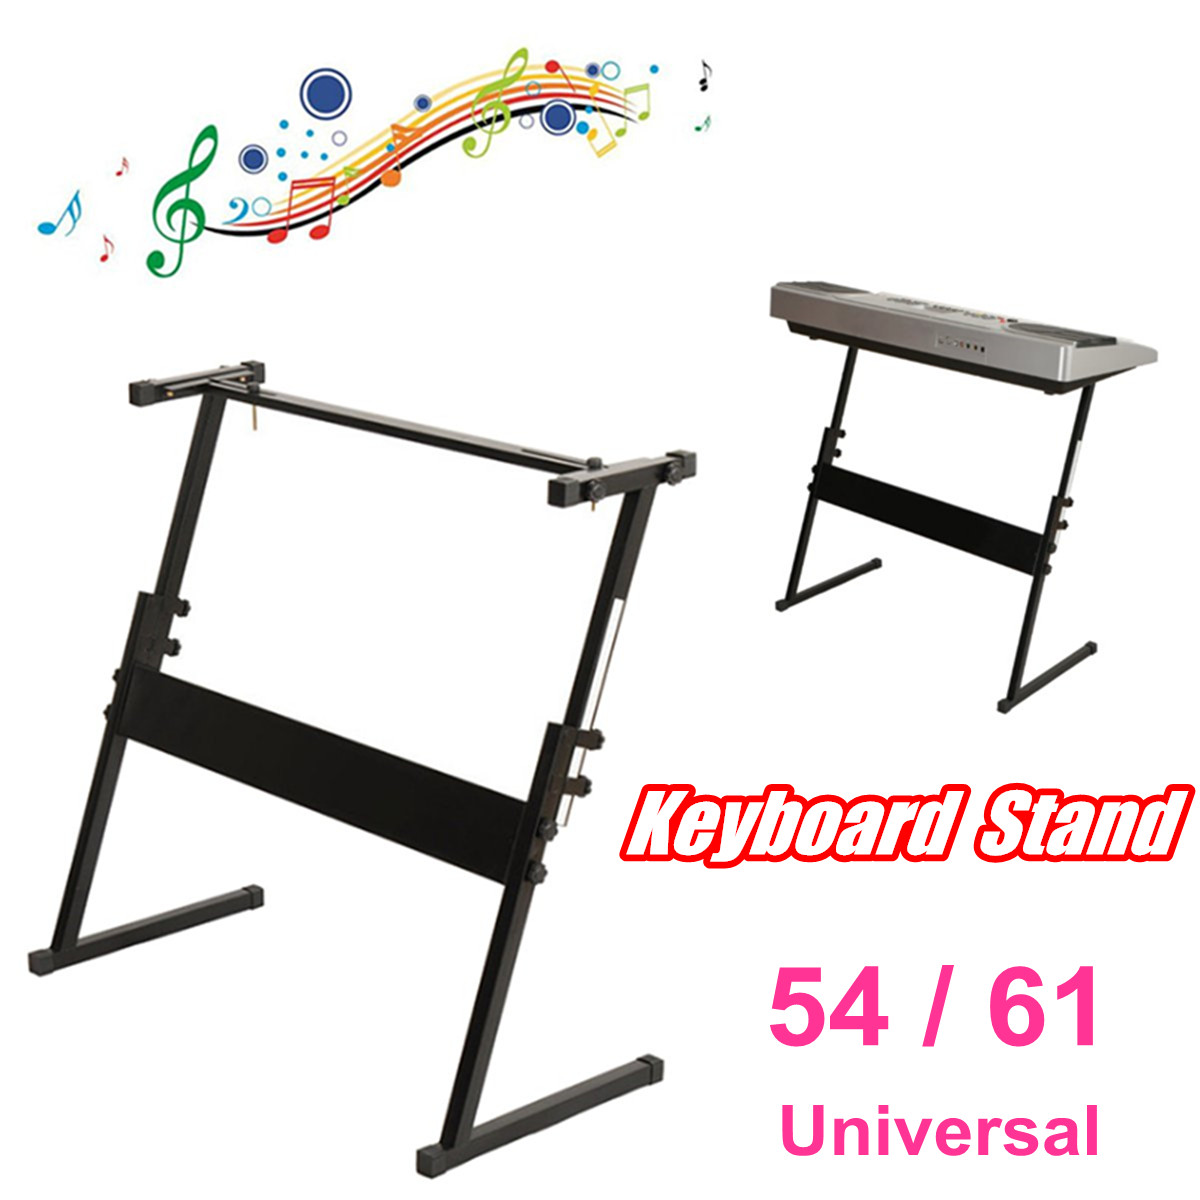 Adjustable Z-Type DJ Mixer Game Console Heavy   Music Electronic 54/61 Keyboard Stand Electric Digital Piano Organ HolderAdjustable Z-Type DJ Mixer Game Console Heavy   Music Electronic 54/61 Keyboard Stand Electric Digital Piano Organ Holder